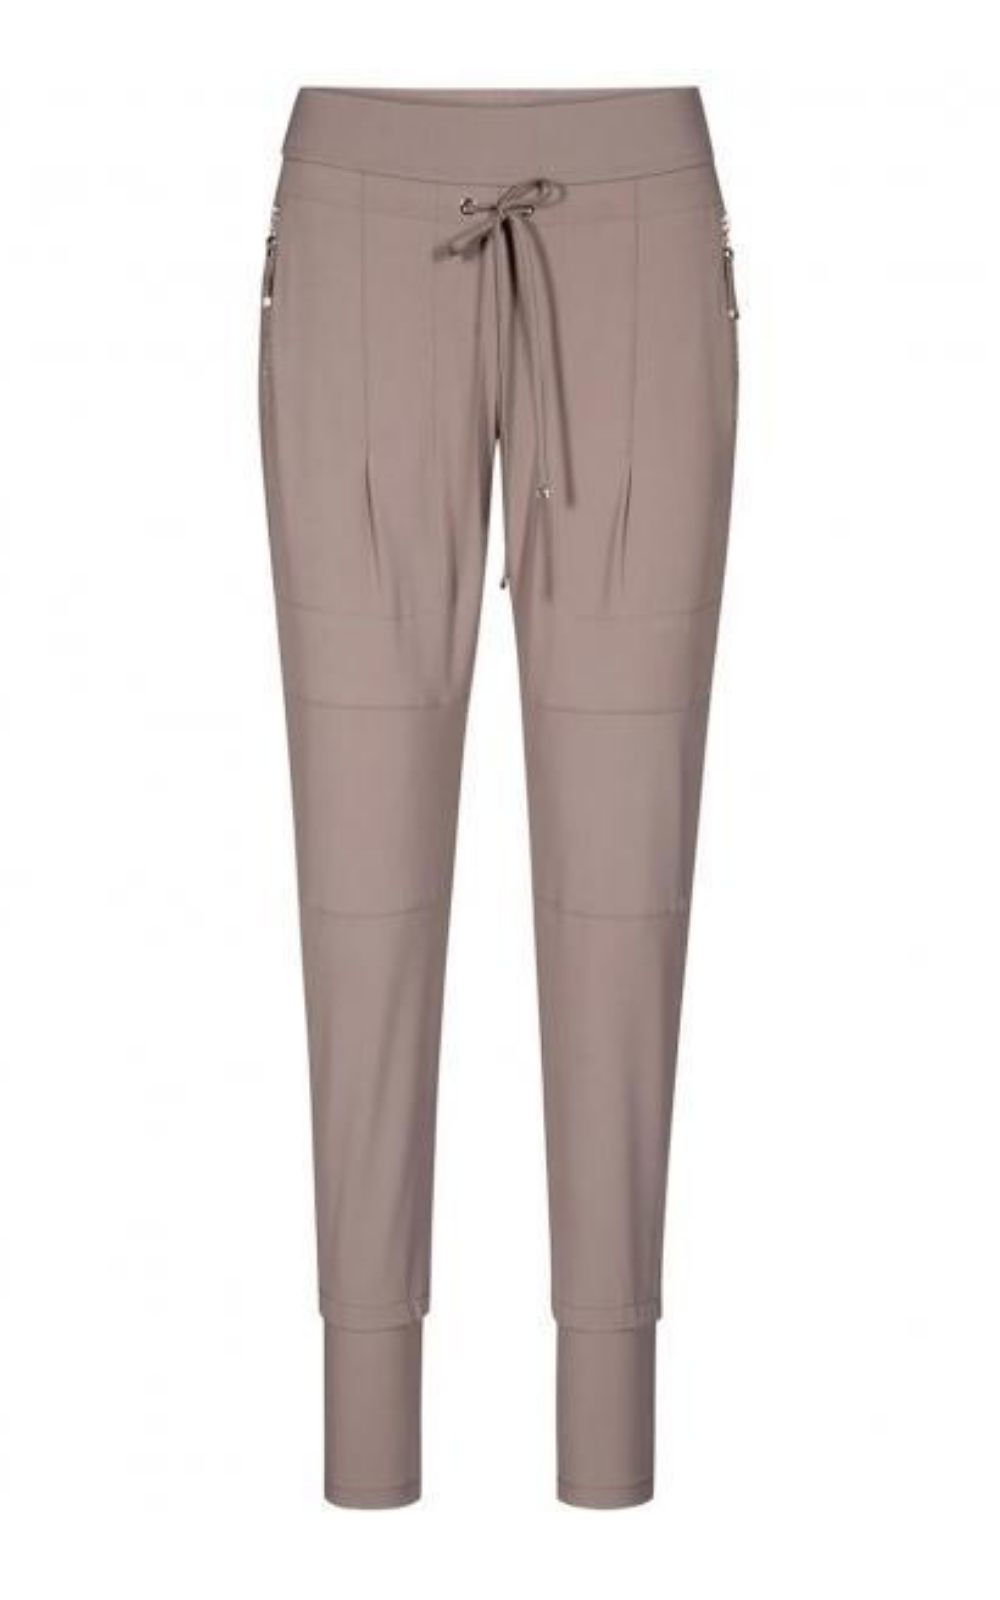 Raffaello Rossi Candy Pants in Taupe